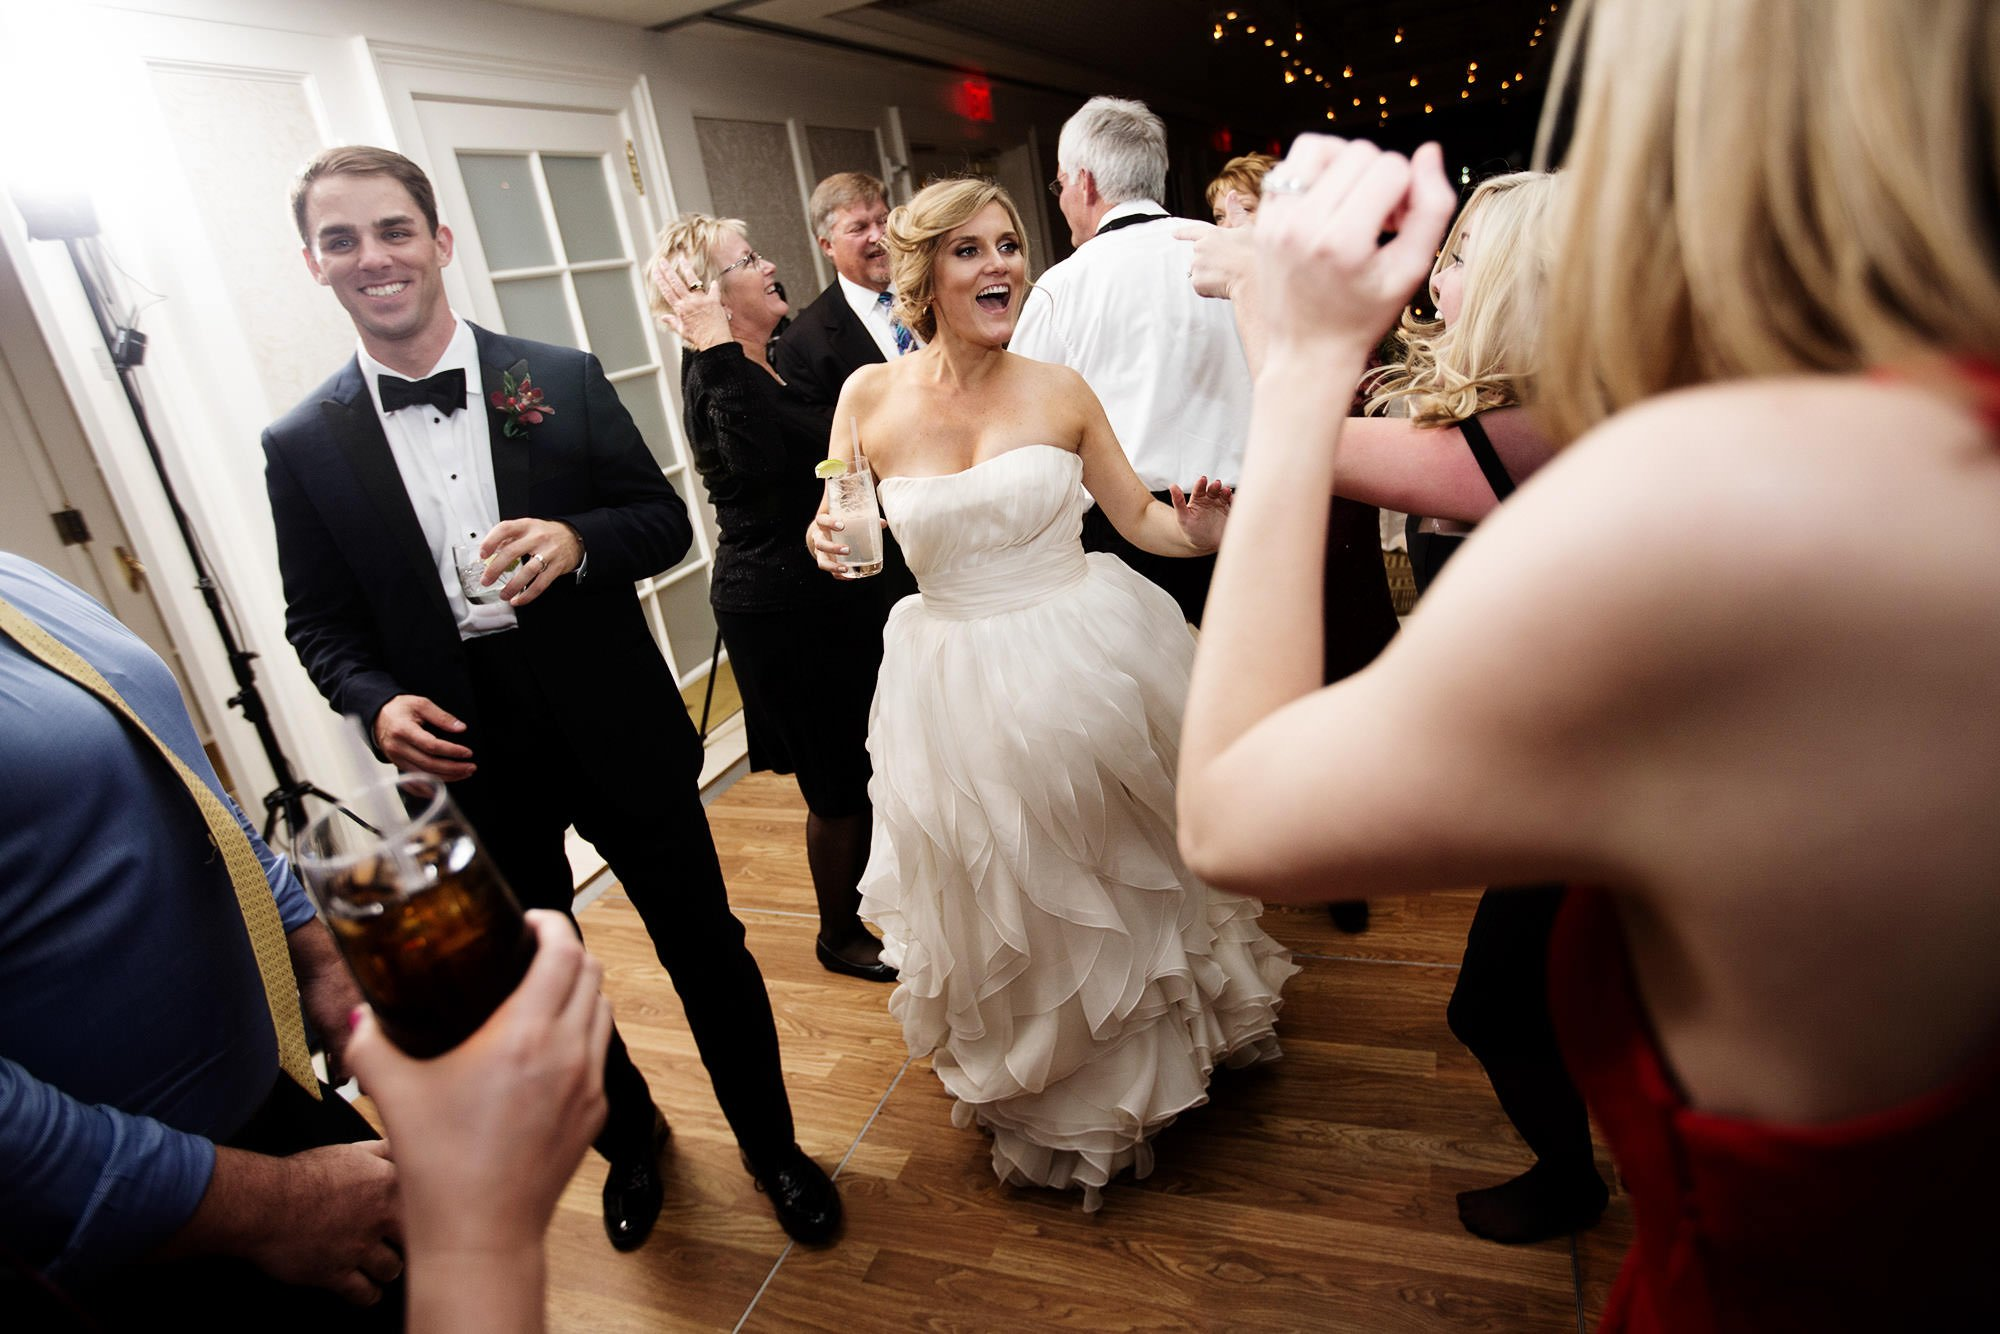 Guests dance during the wedding reception at the Hay Adams DC Hotel.